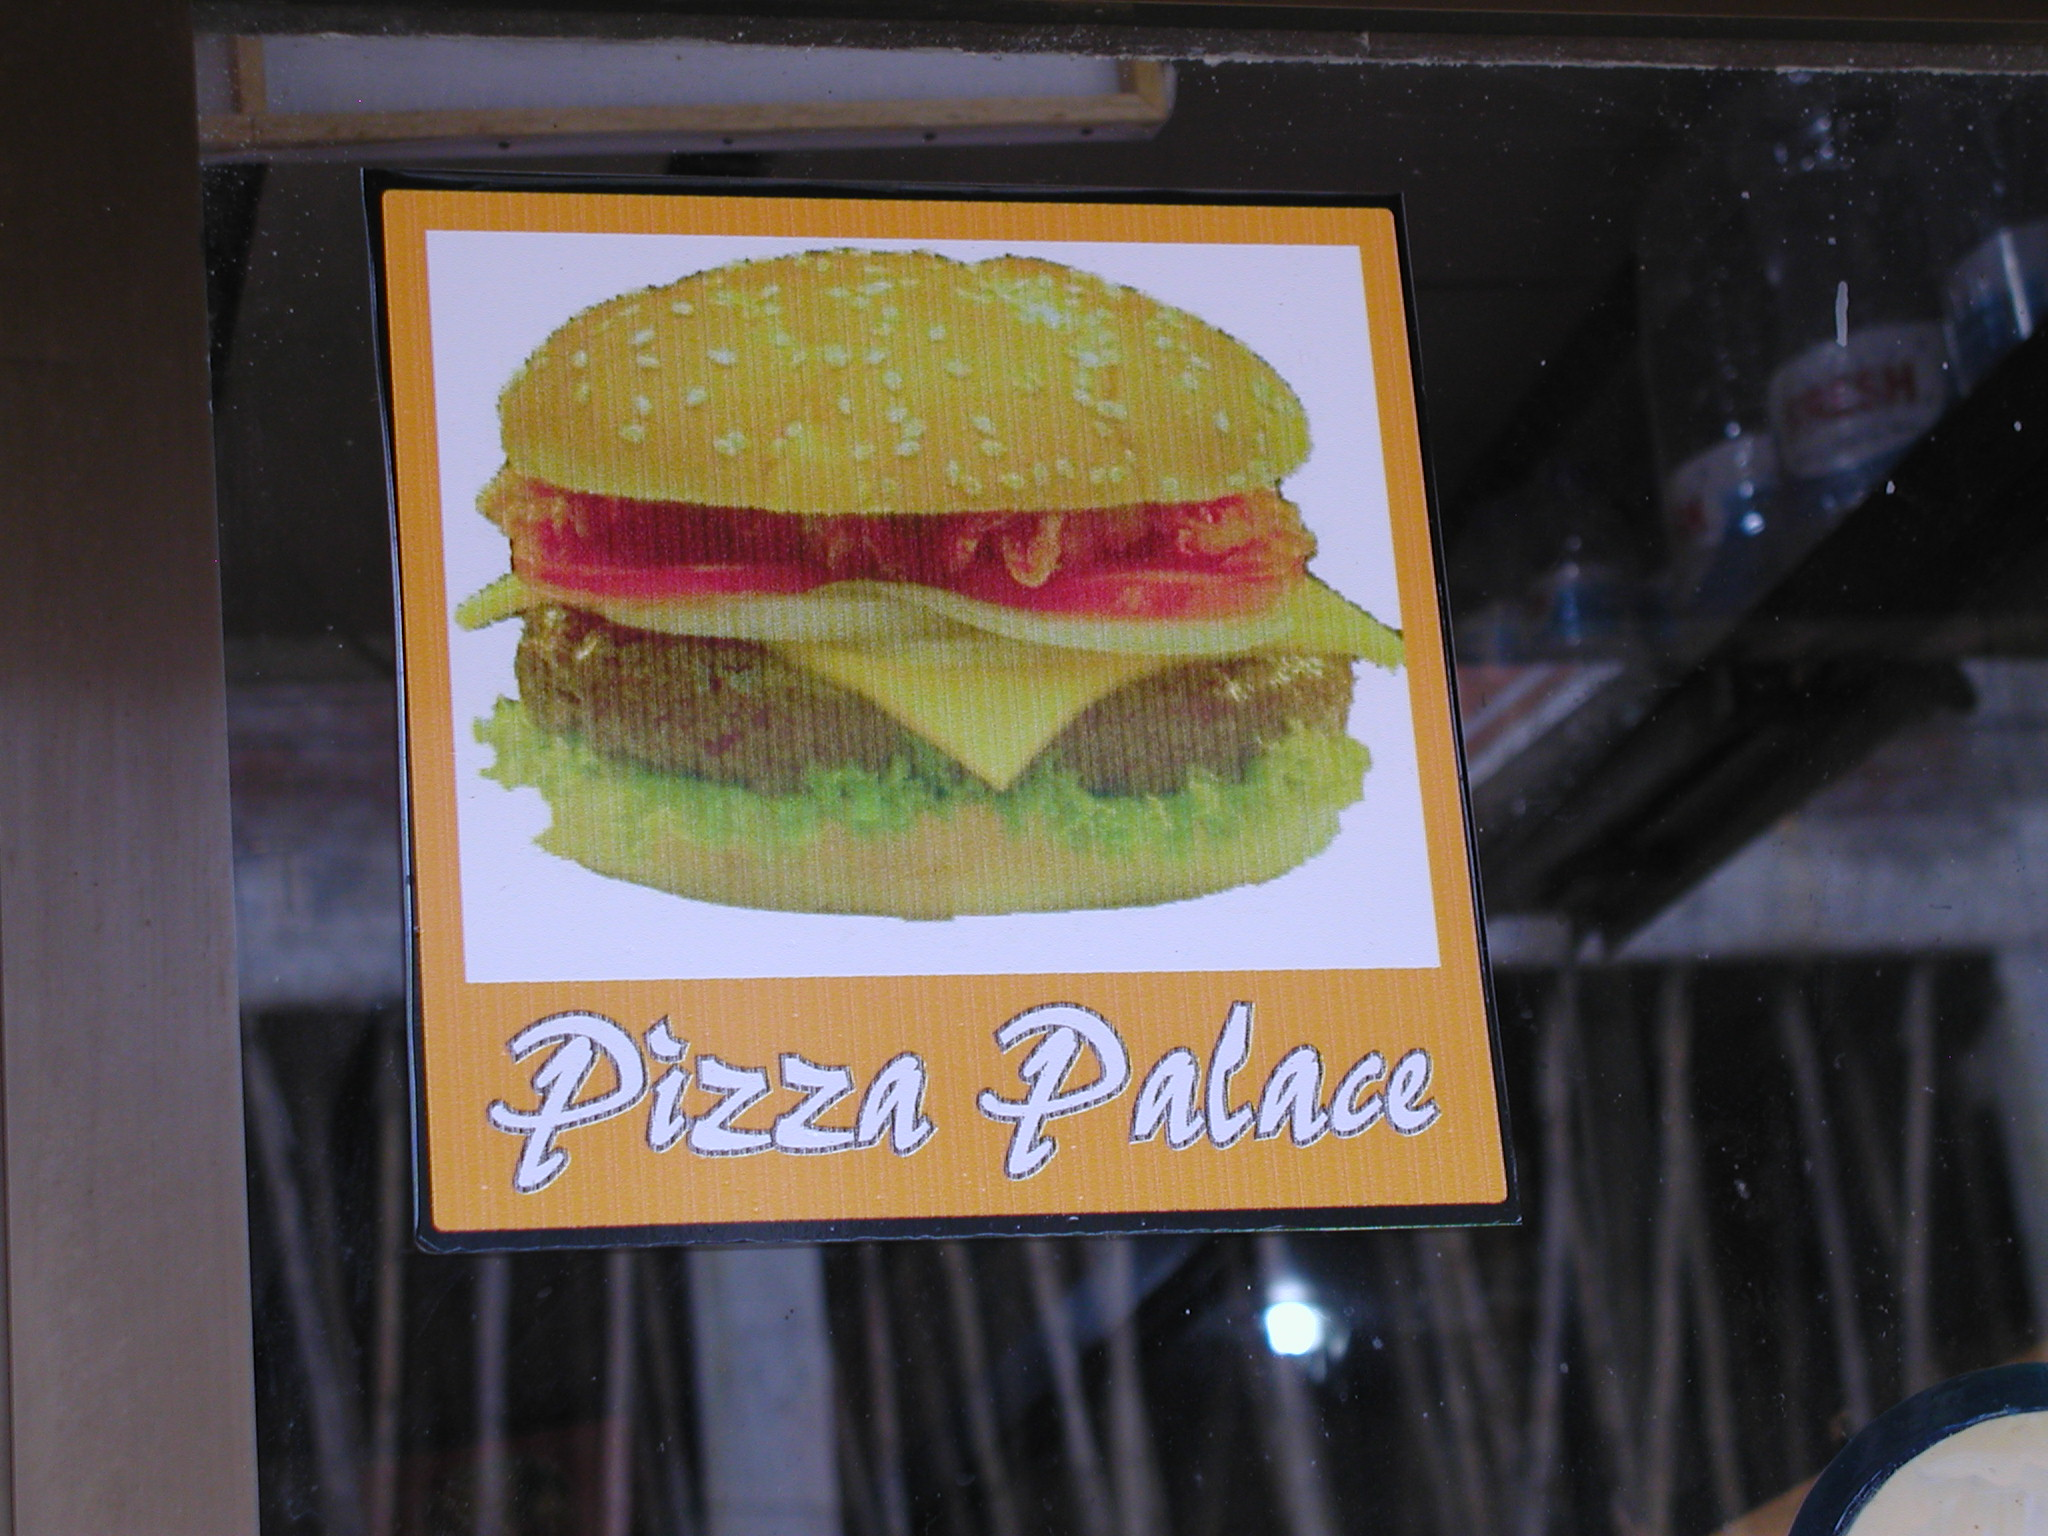 A sign for the restaurant pizza palace with a photo of a cheeseburger